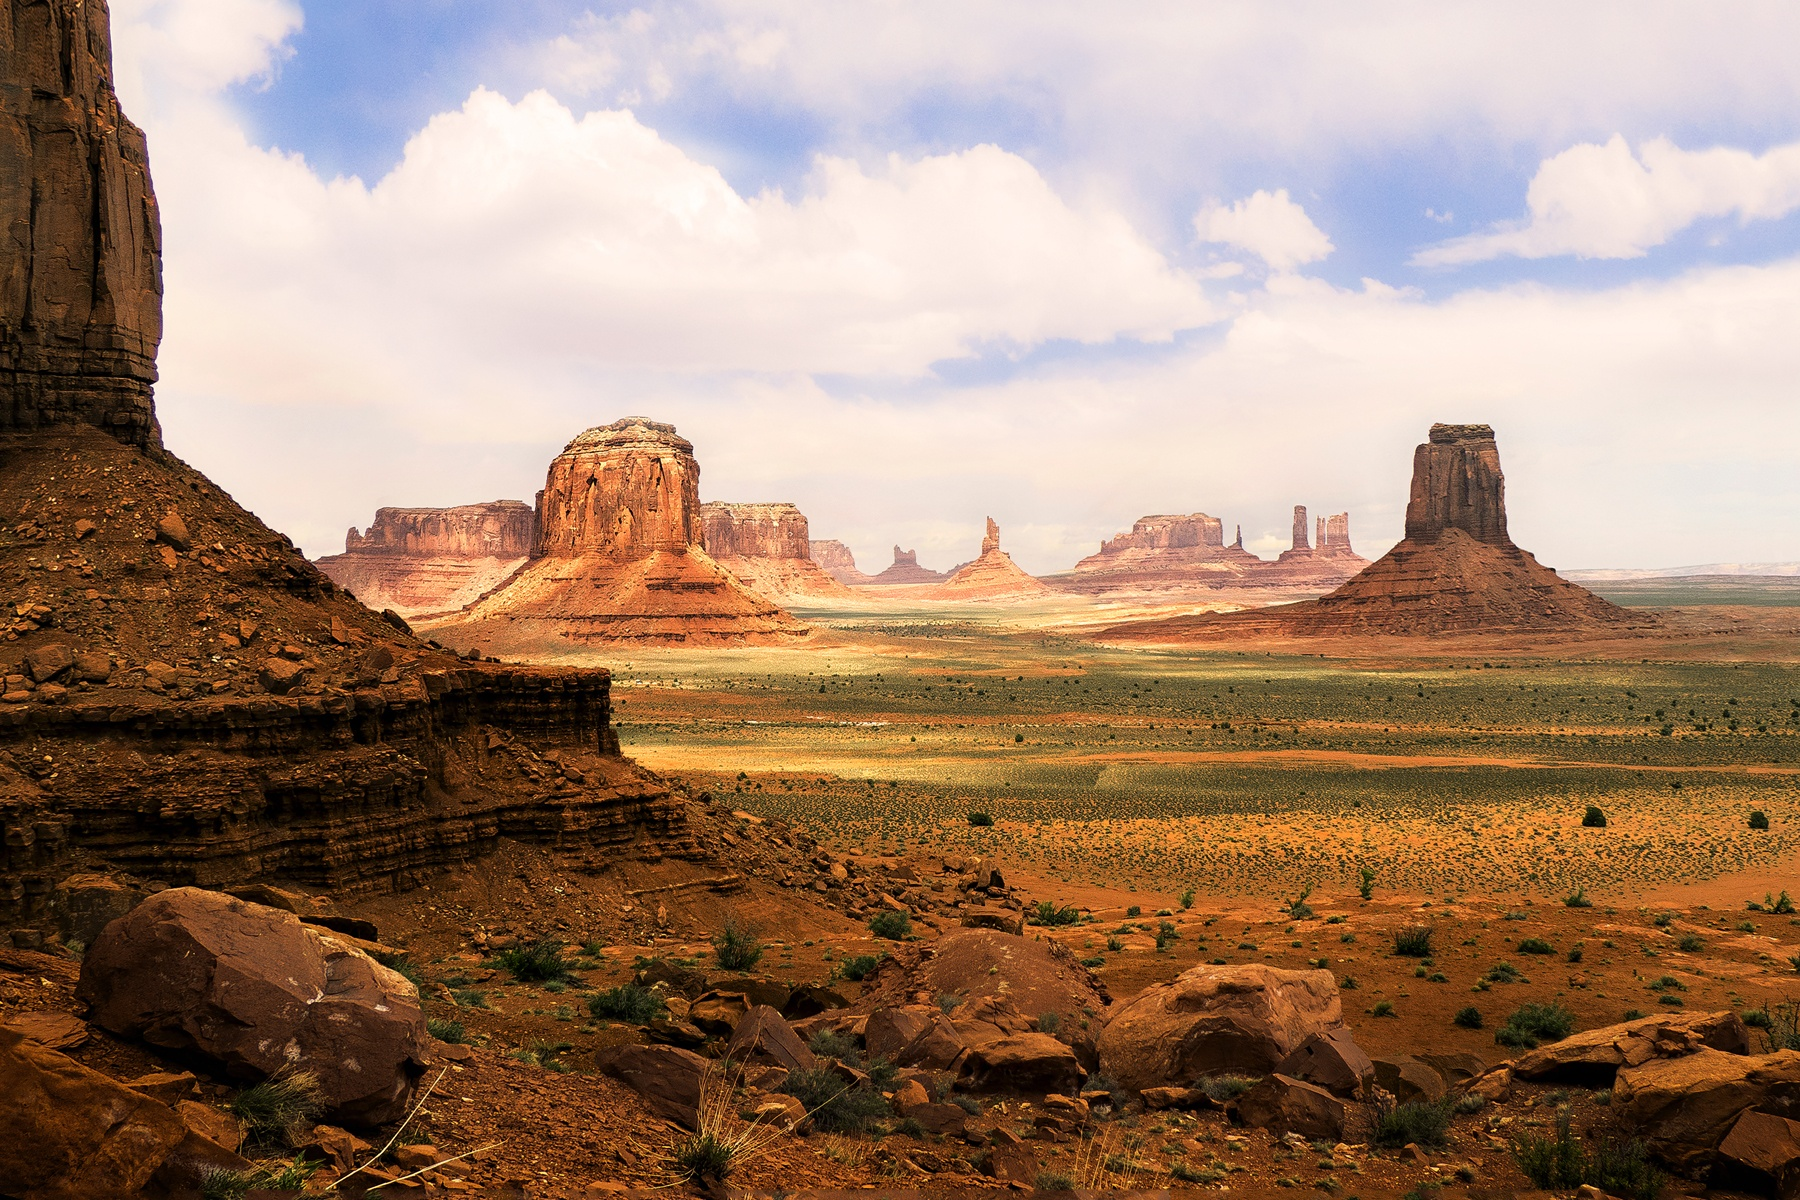 MONUMENT VALLEY - Thanks to Hollywood, I'm sure it's obvious to most people where this shot was taken